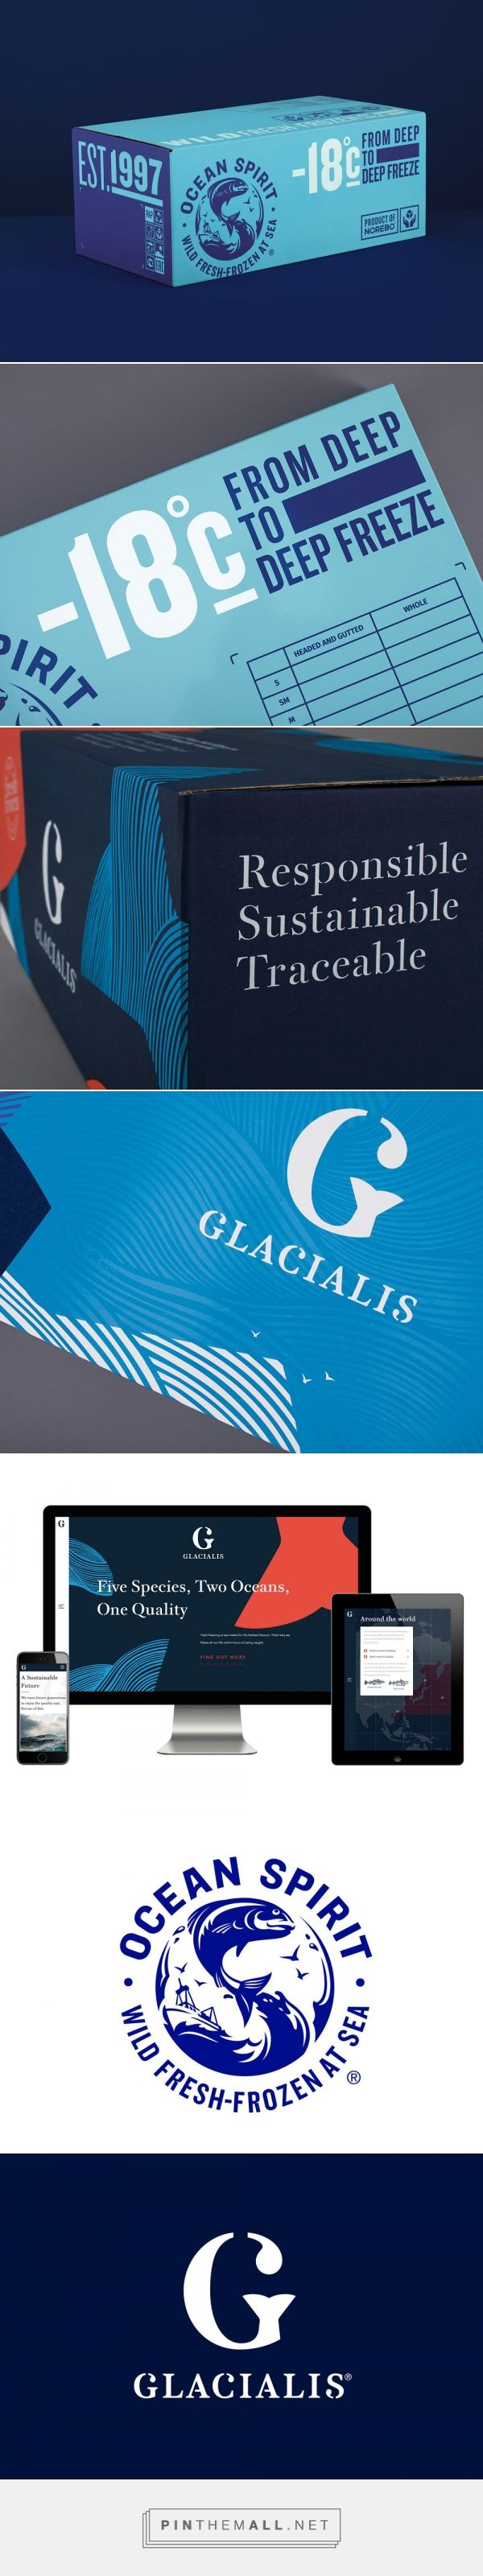 Check Out This Packaging for a Sustainable Seafood Brand — The Dieline | Packaging & Branding Design & Innovation News - created via https://pinthemall.net